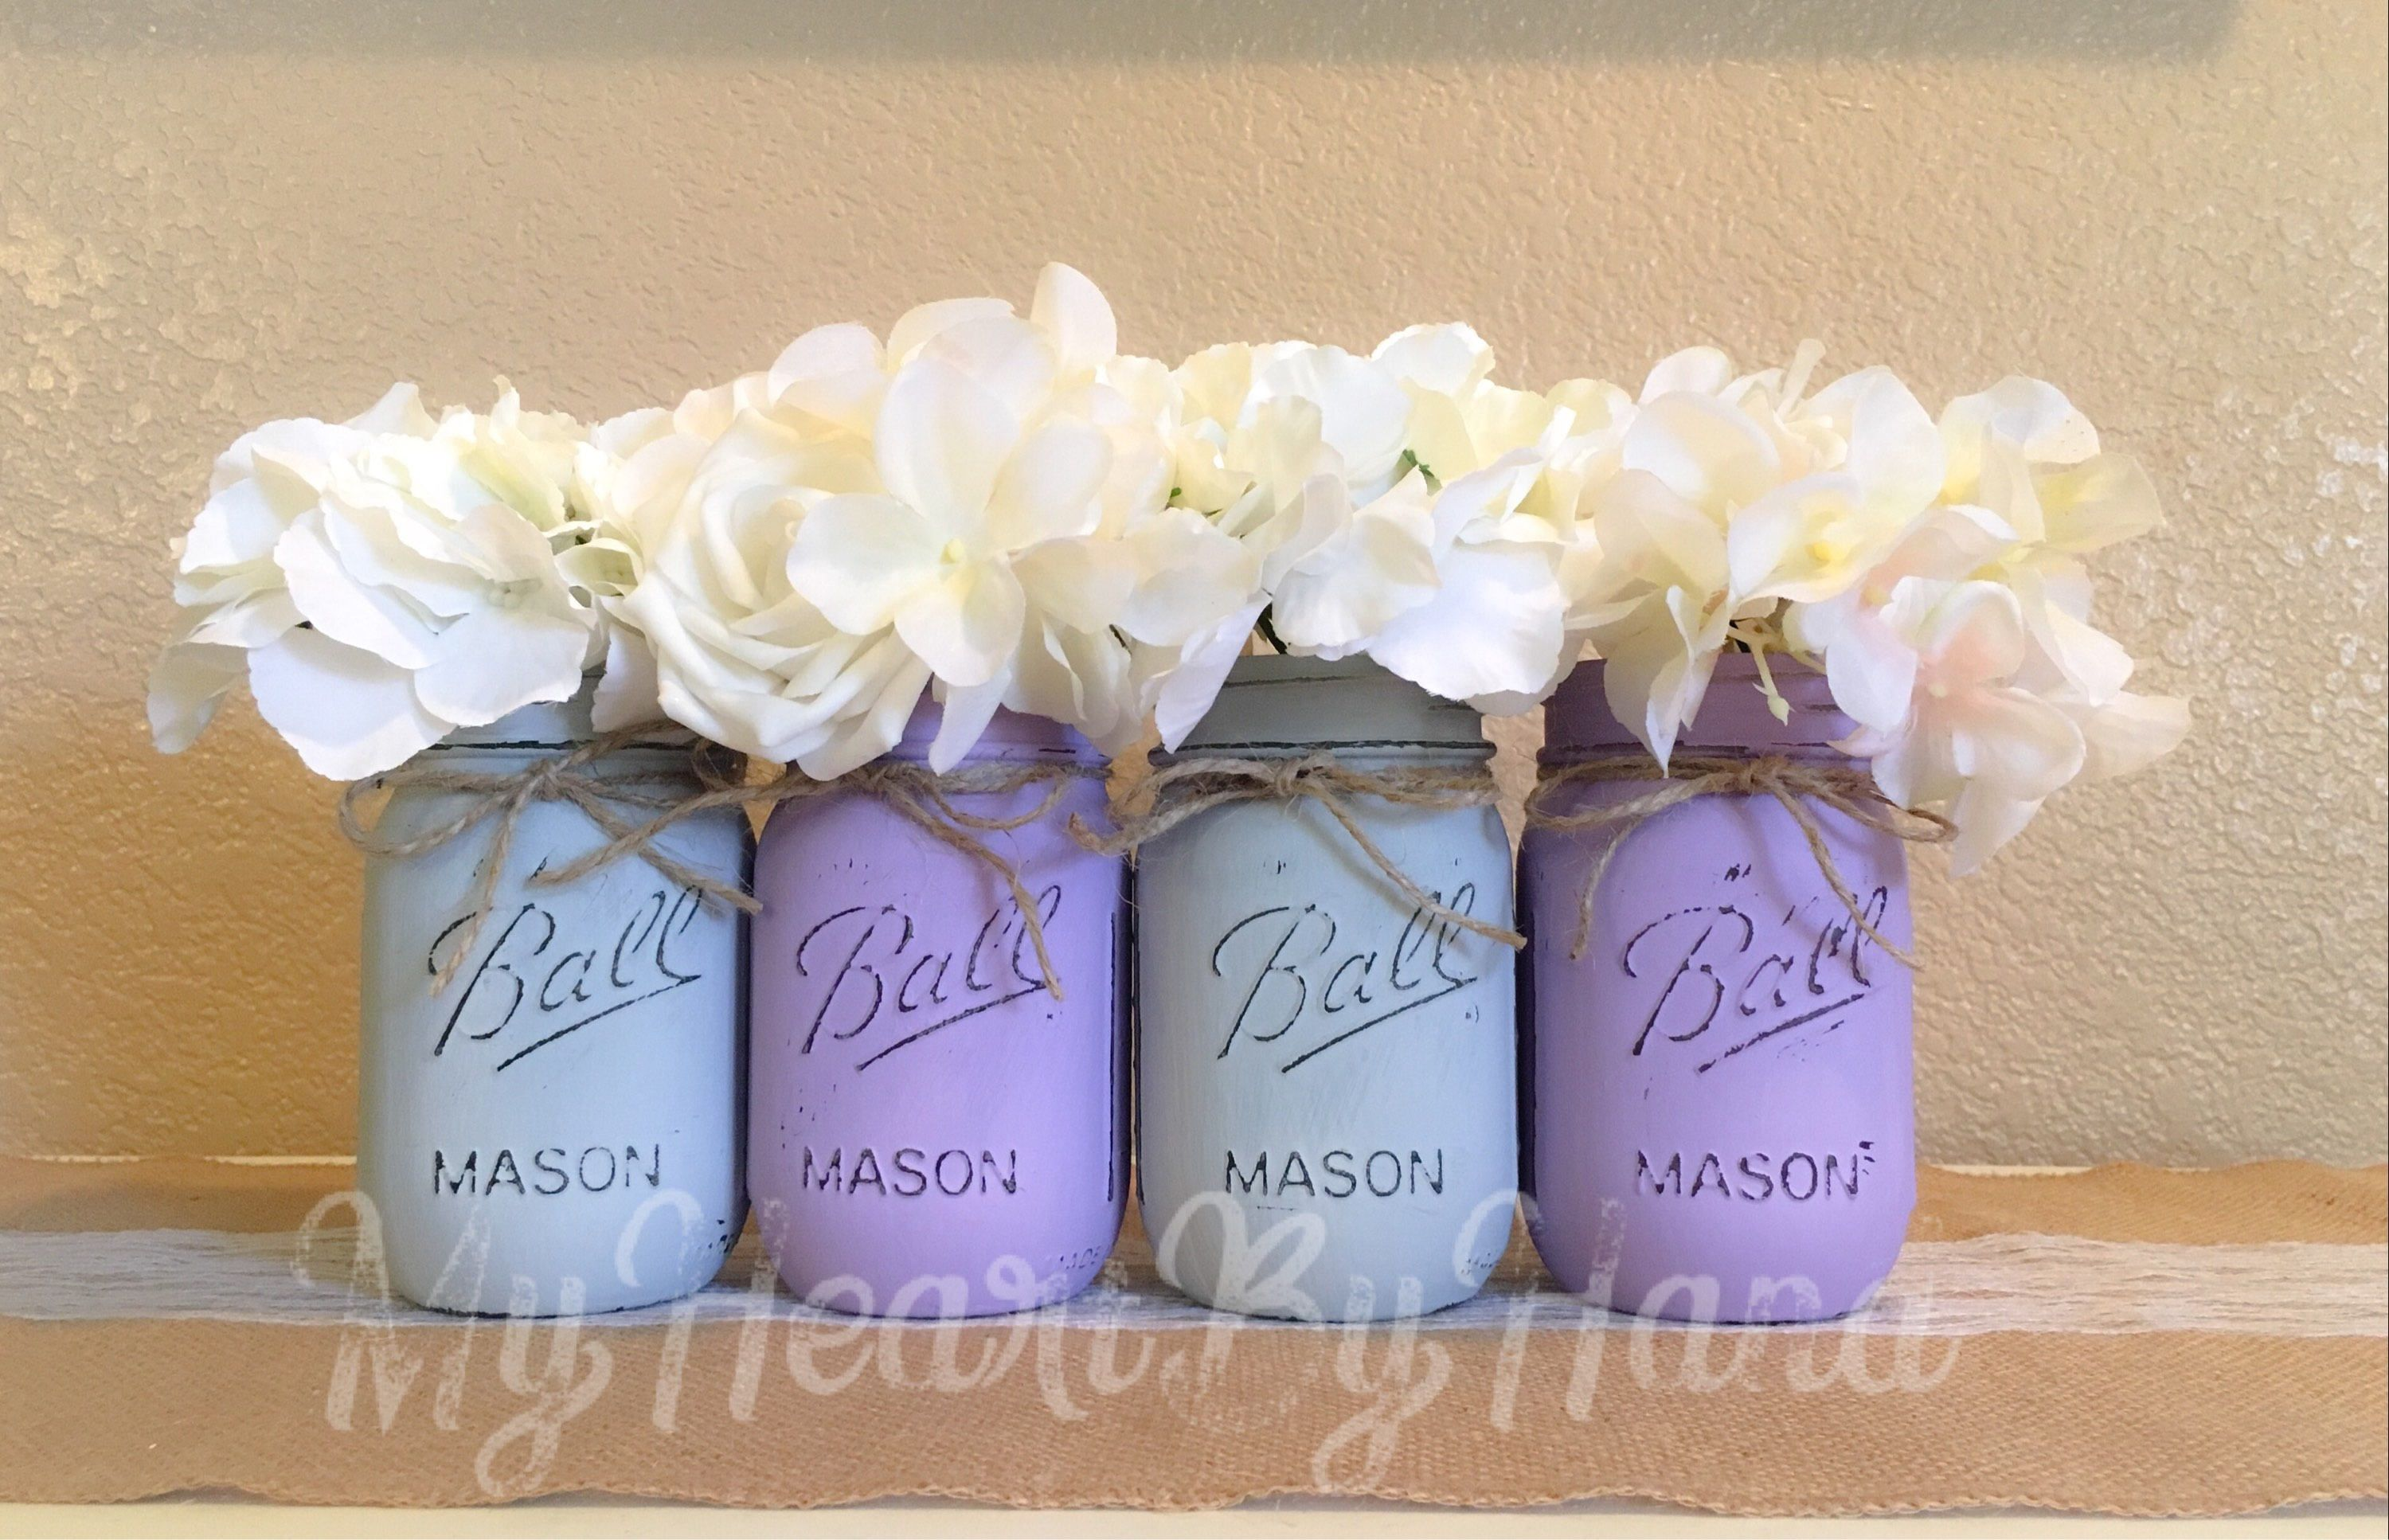 Baby shower centerpieces lavender and gray rustic mason jar